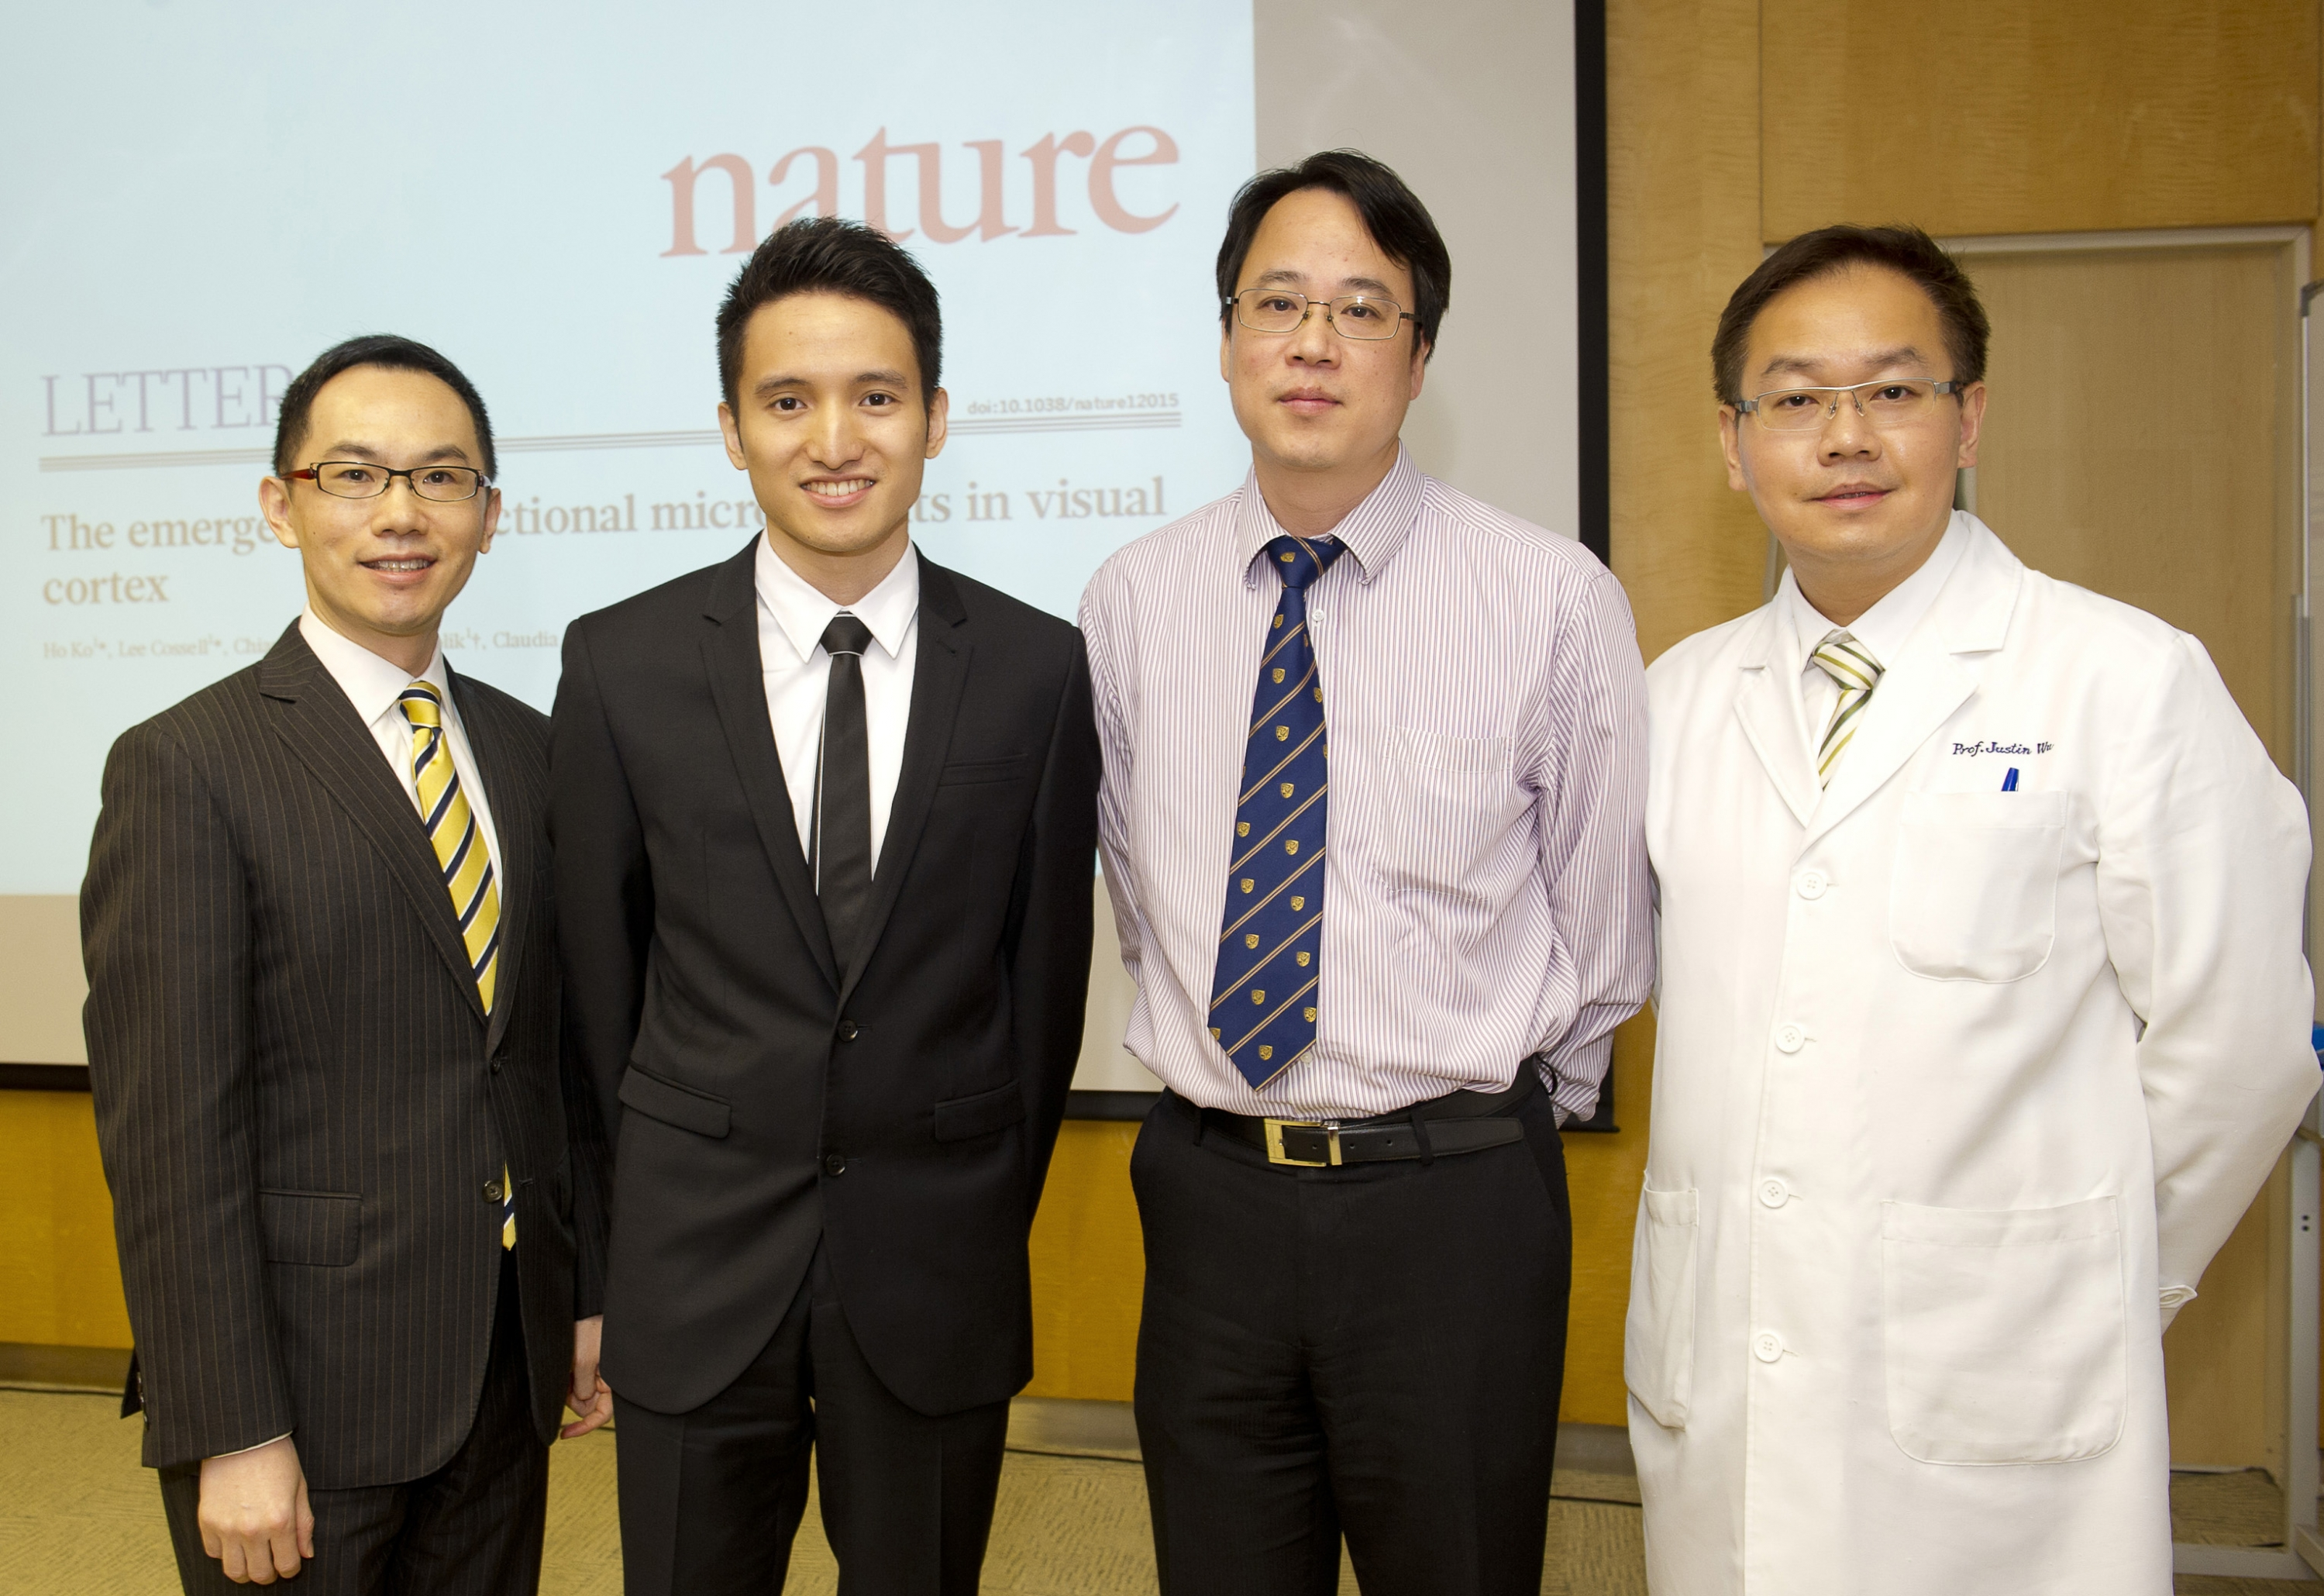 (From left) Prof. Vincent Chun-tong MOK, Assistant Dean (Clinical) and Professor, Division of Neurology, Department of Medicine and Therapeutics; Dr. Owen KO Ho, MBChB Year 3 student; Prof. Wing-ho YUNG, Professor, School of Biomedical Sciences and Prof. Justin Che-yuen WU, Associate Dean (Clinical), Faculty of Medicine at CUHK.